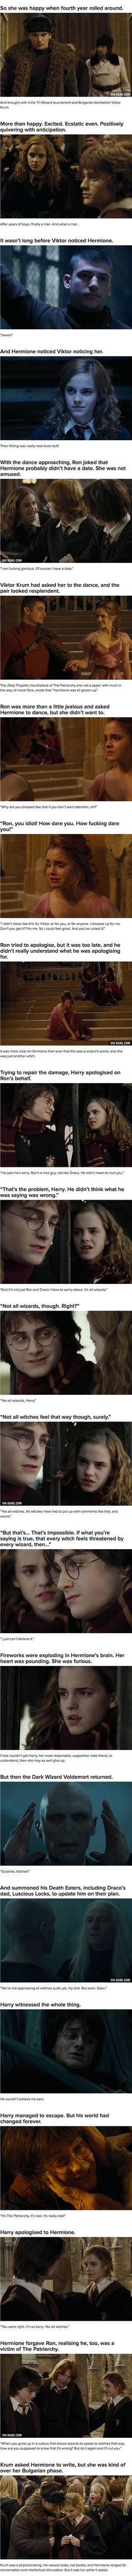 "If Hermione Were The Main Character In ""Harry Potter"" (Part 3 Of 5)"